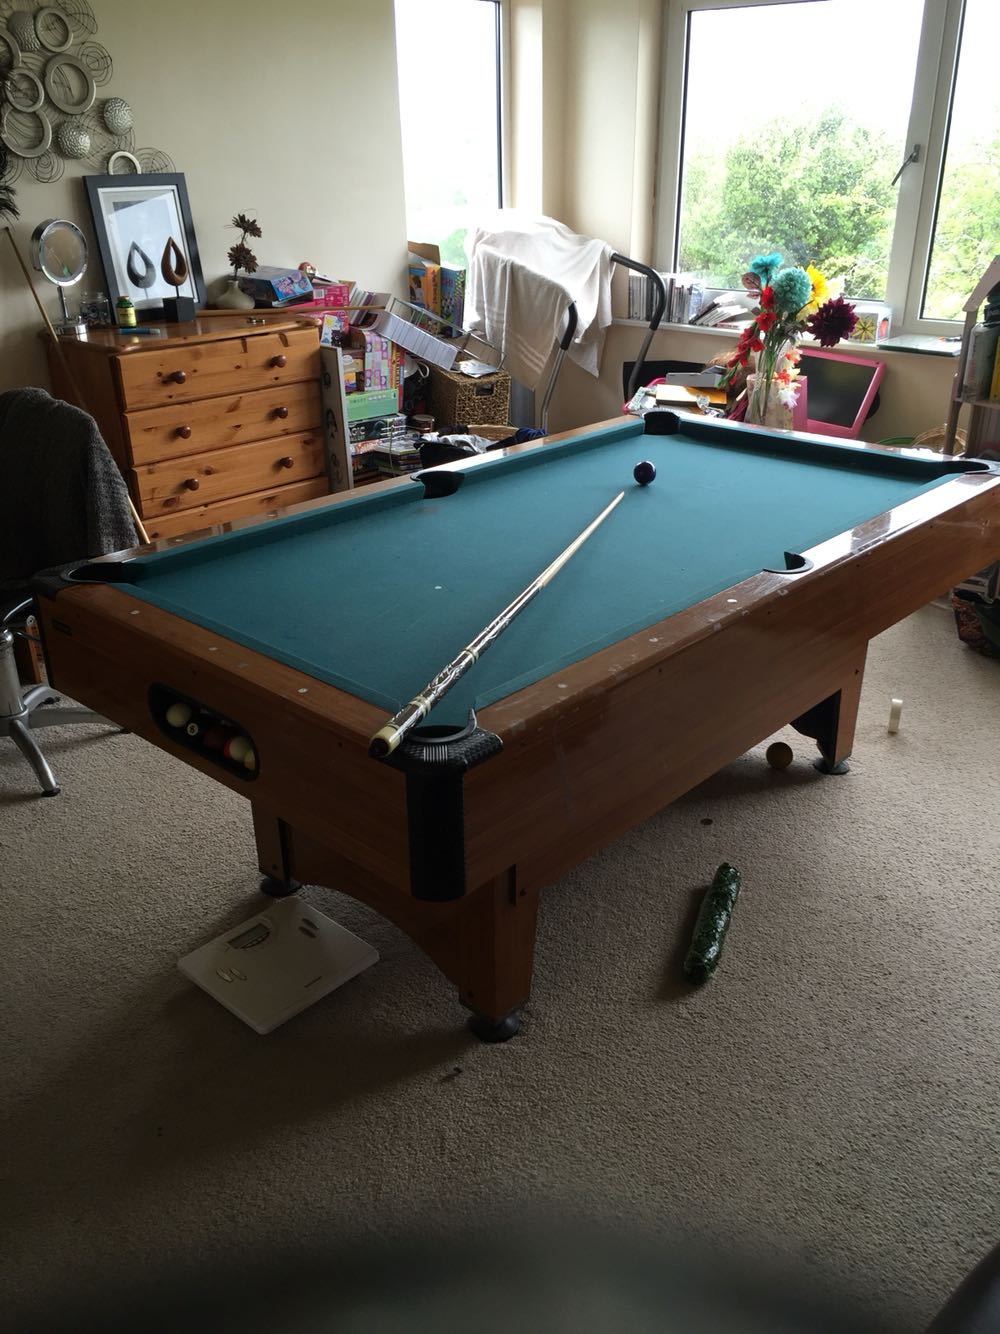 American pool table for sale in uk view 114 bargains for 12ft snooker table for sale uk